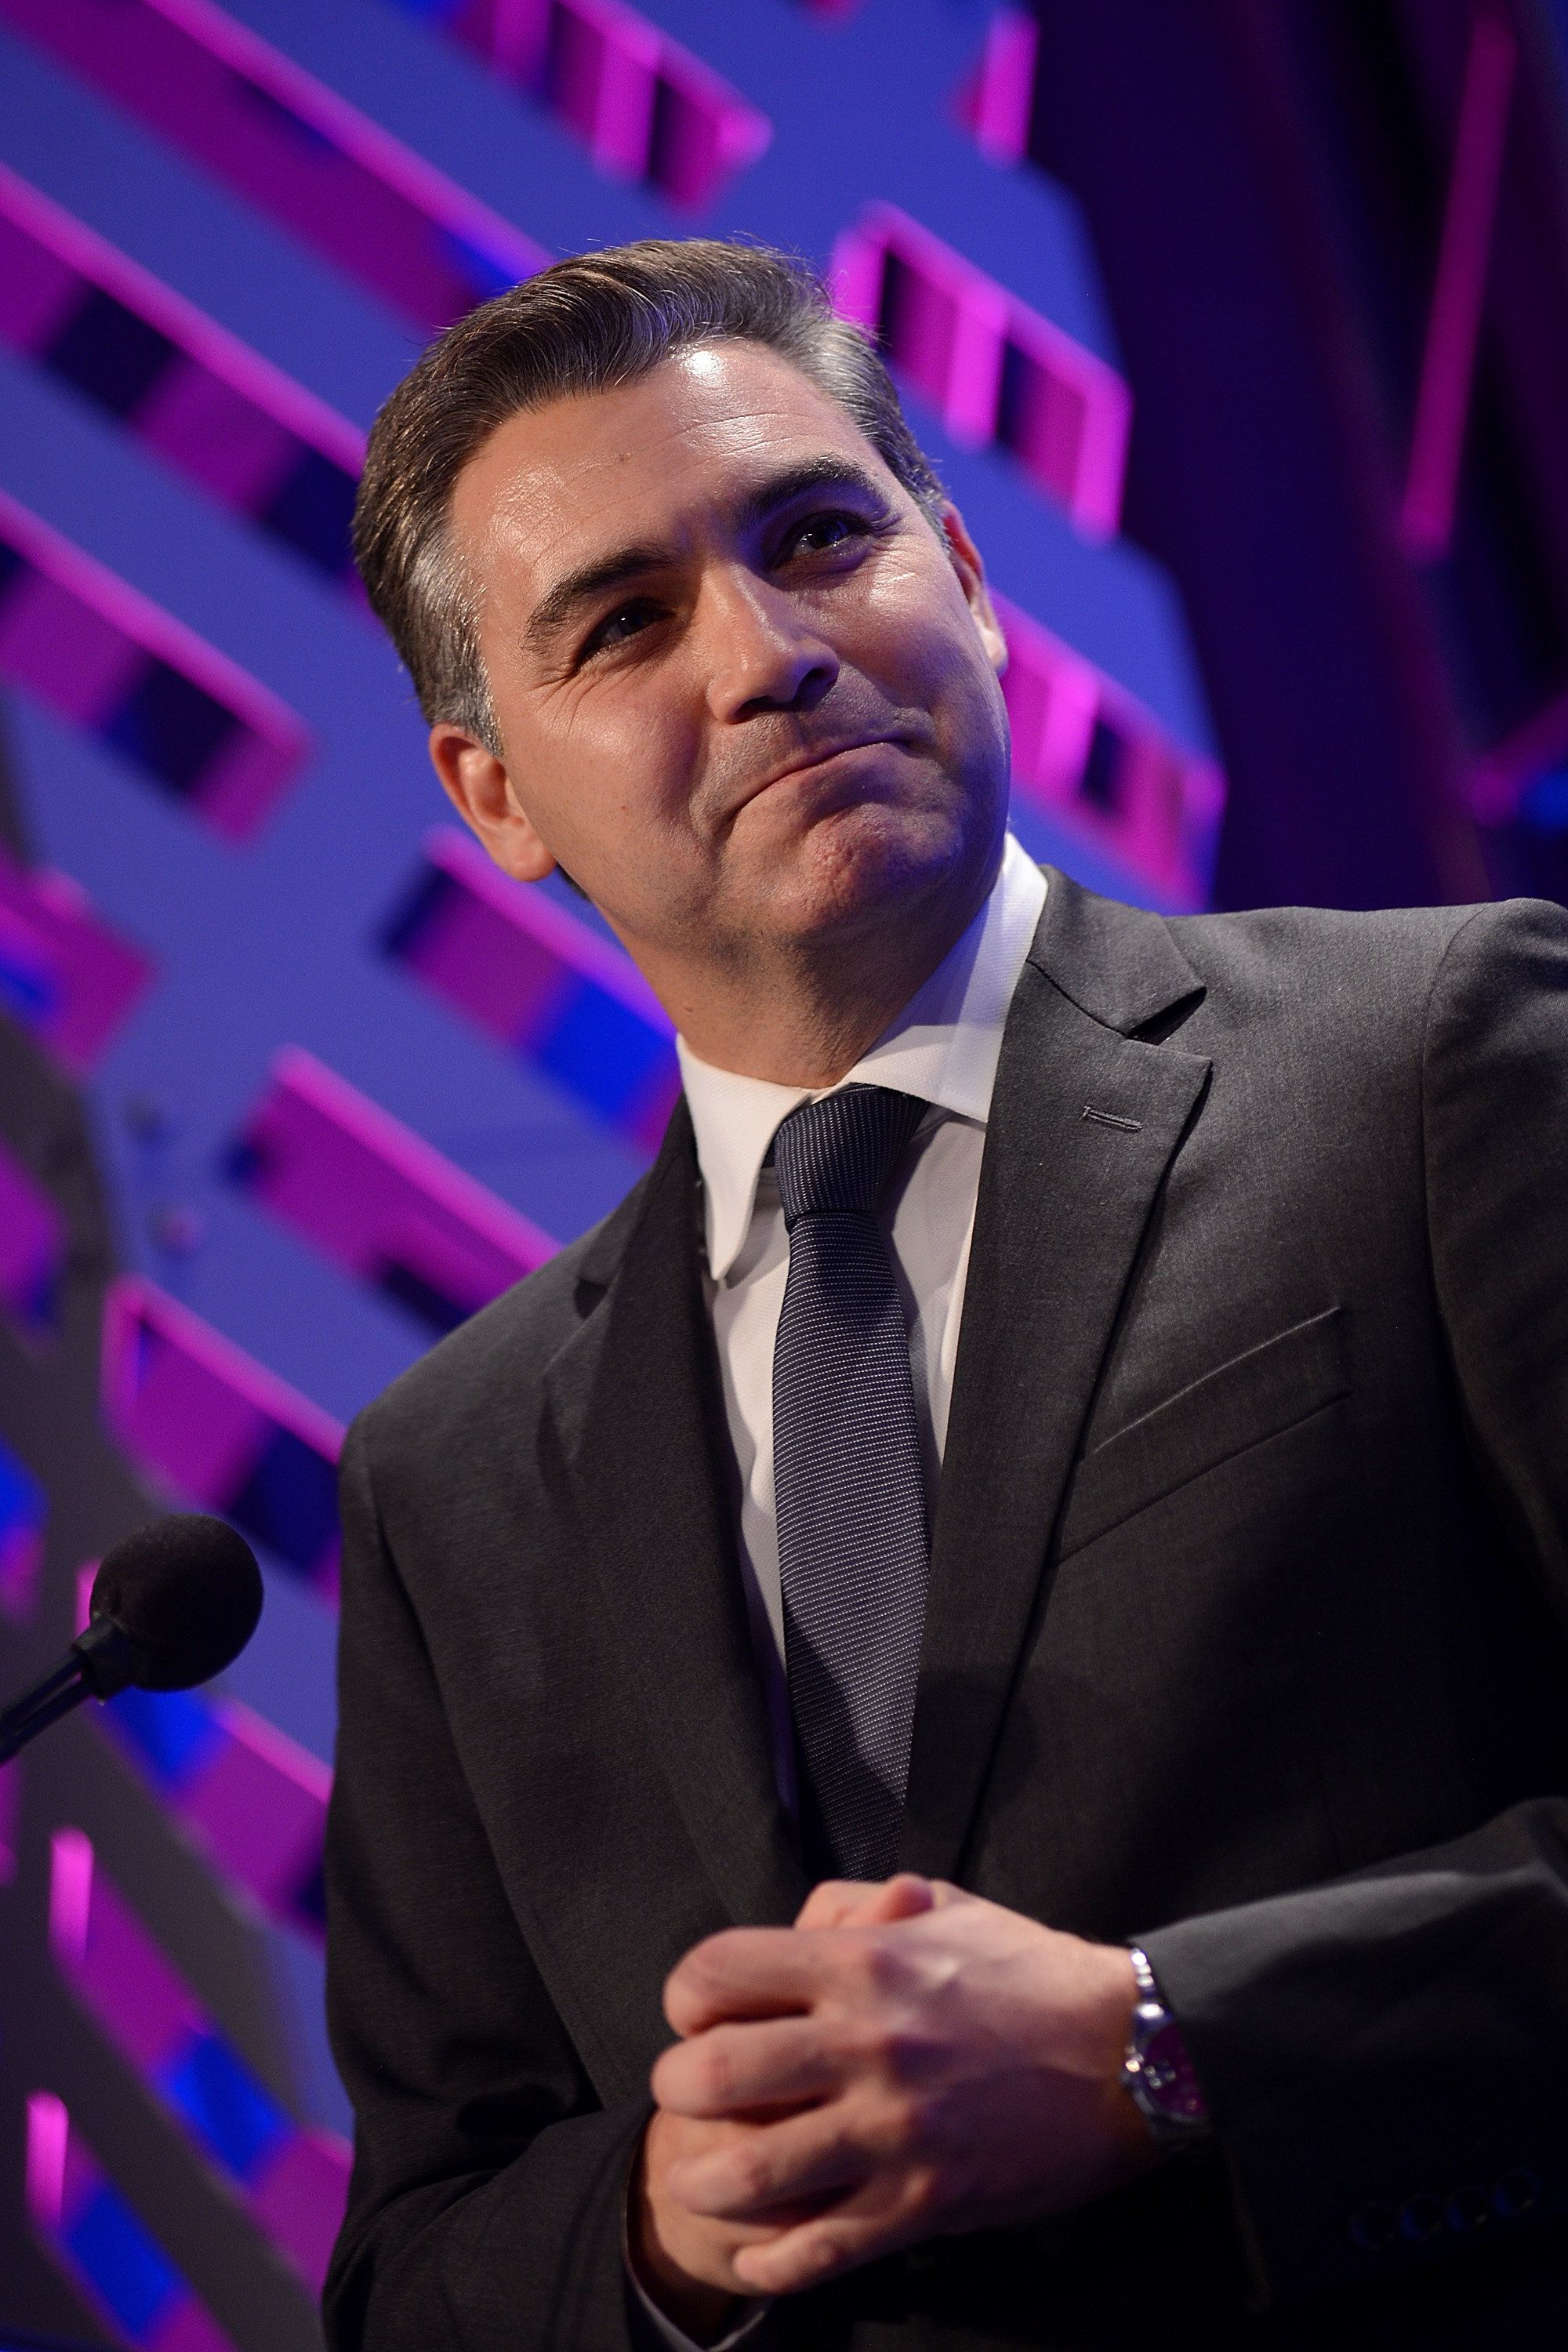 Judge Orders White House To Reinstate Jim Acosta's Press